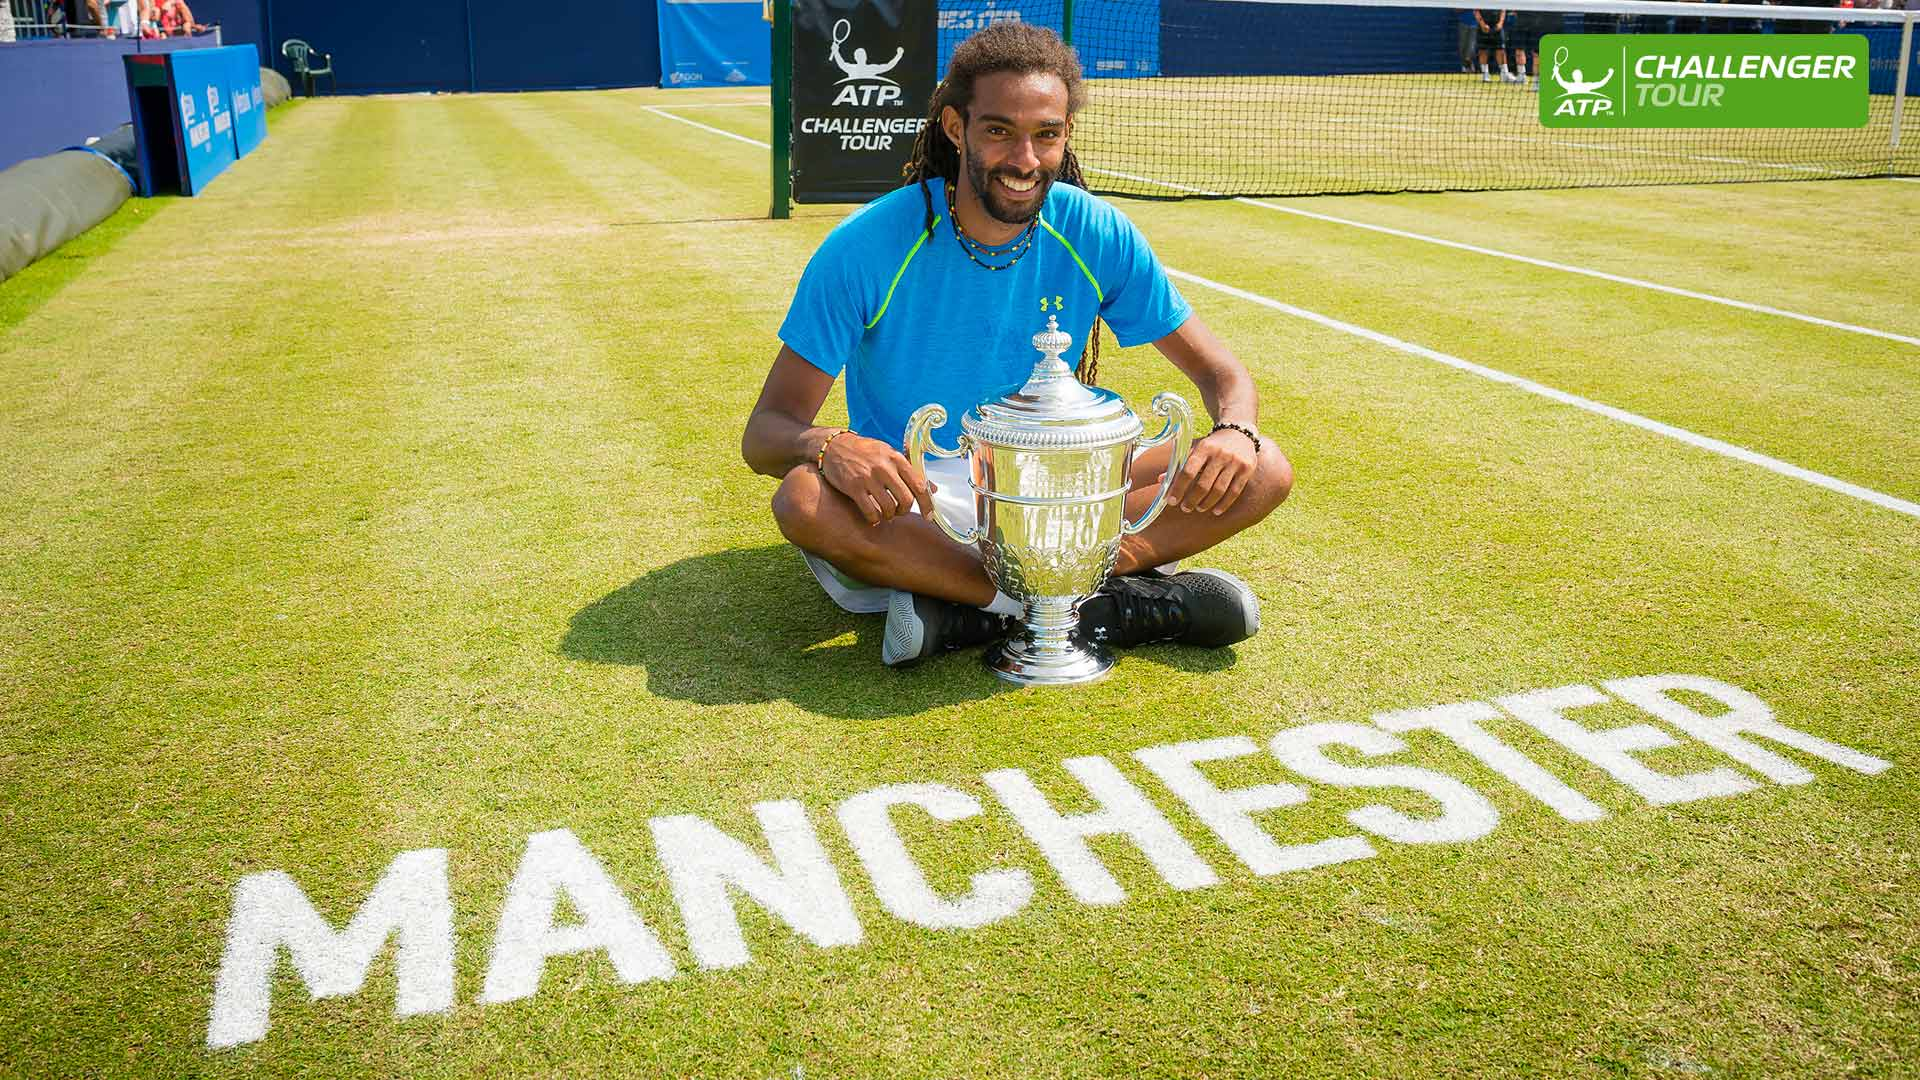 Dustin Brown won his first ATP Challenger Tour title of the year in Manchester.